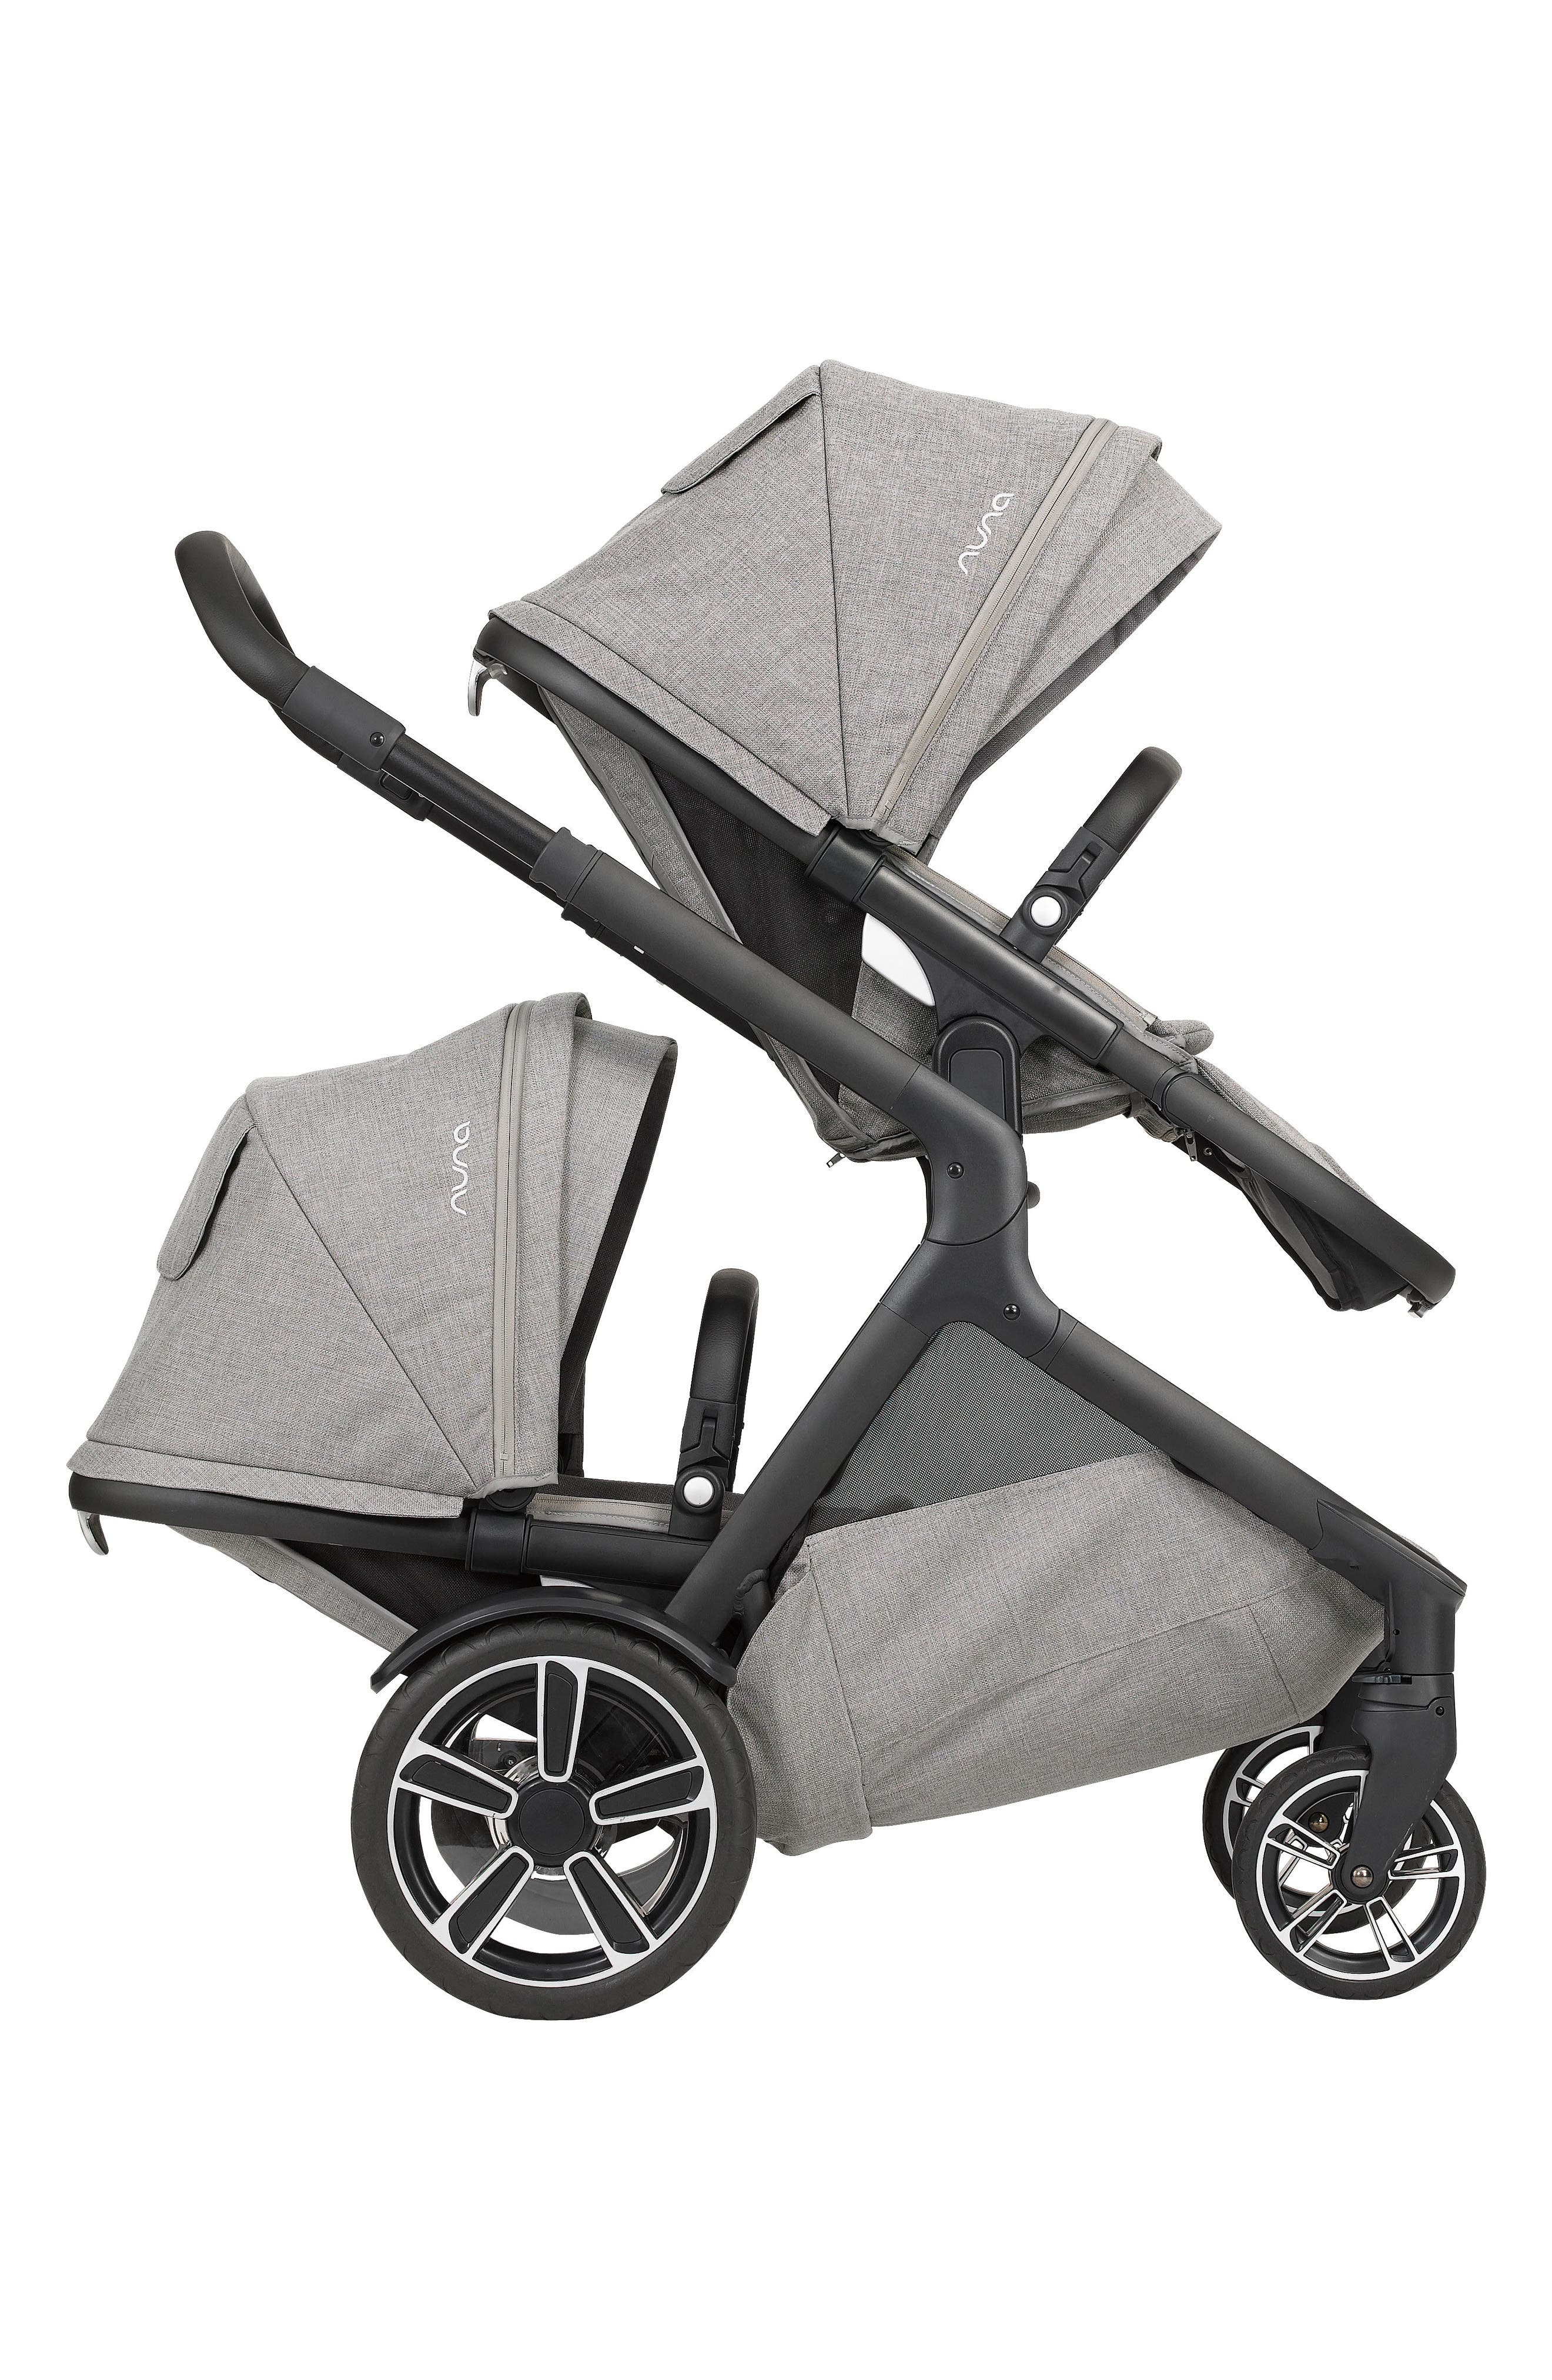 DEMI<sup>™</sup> Grow Sibling Seat Attachment for DEMI Grow Stroller,                             Alternate thumbnail 2, color,                             Frost